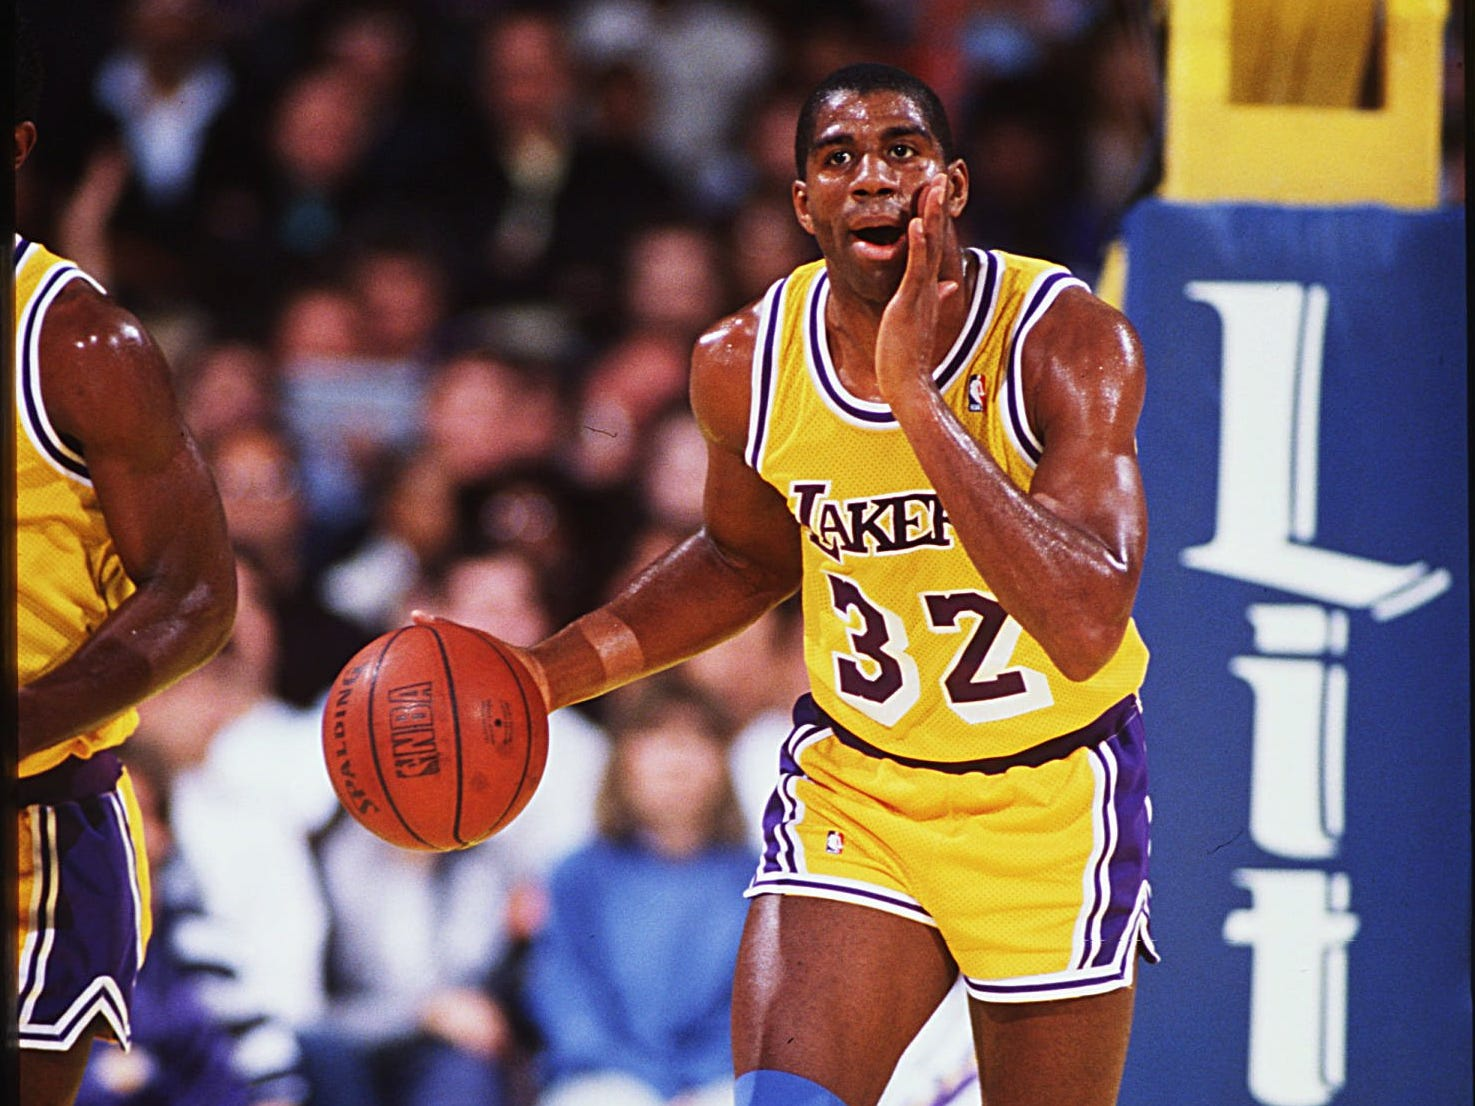 1990: Magic Johnson